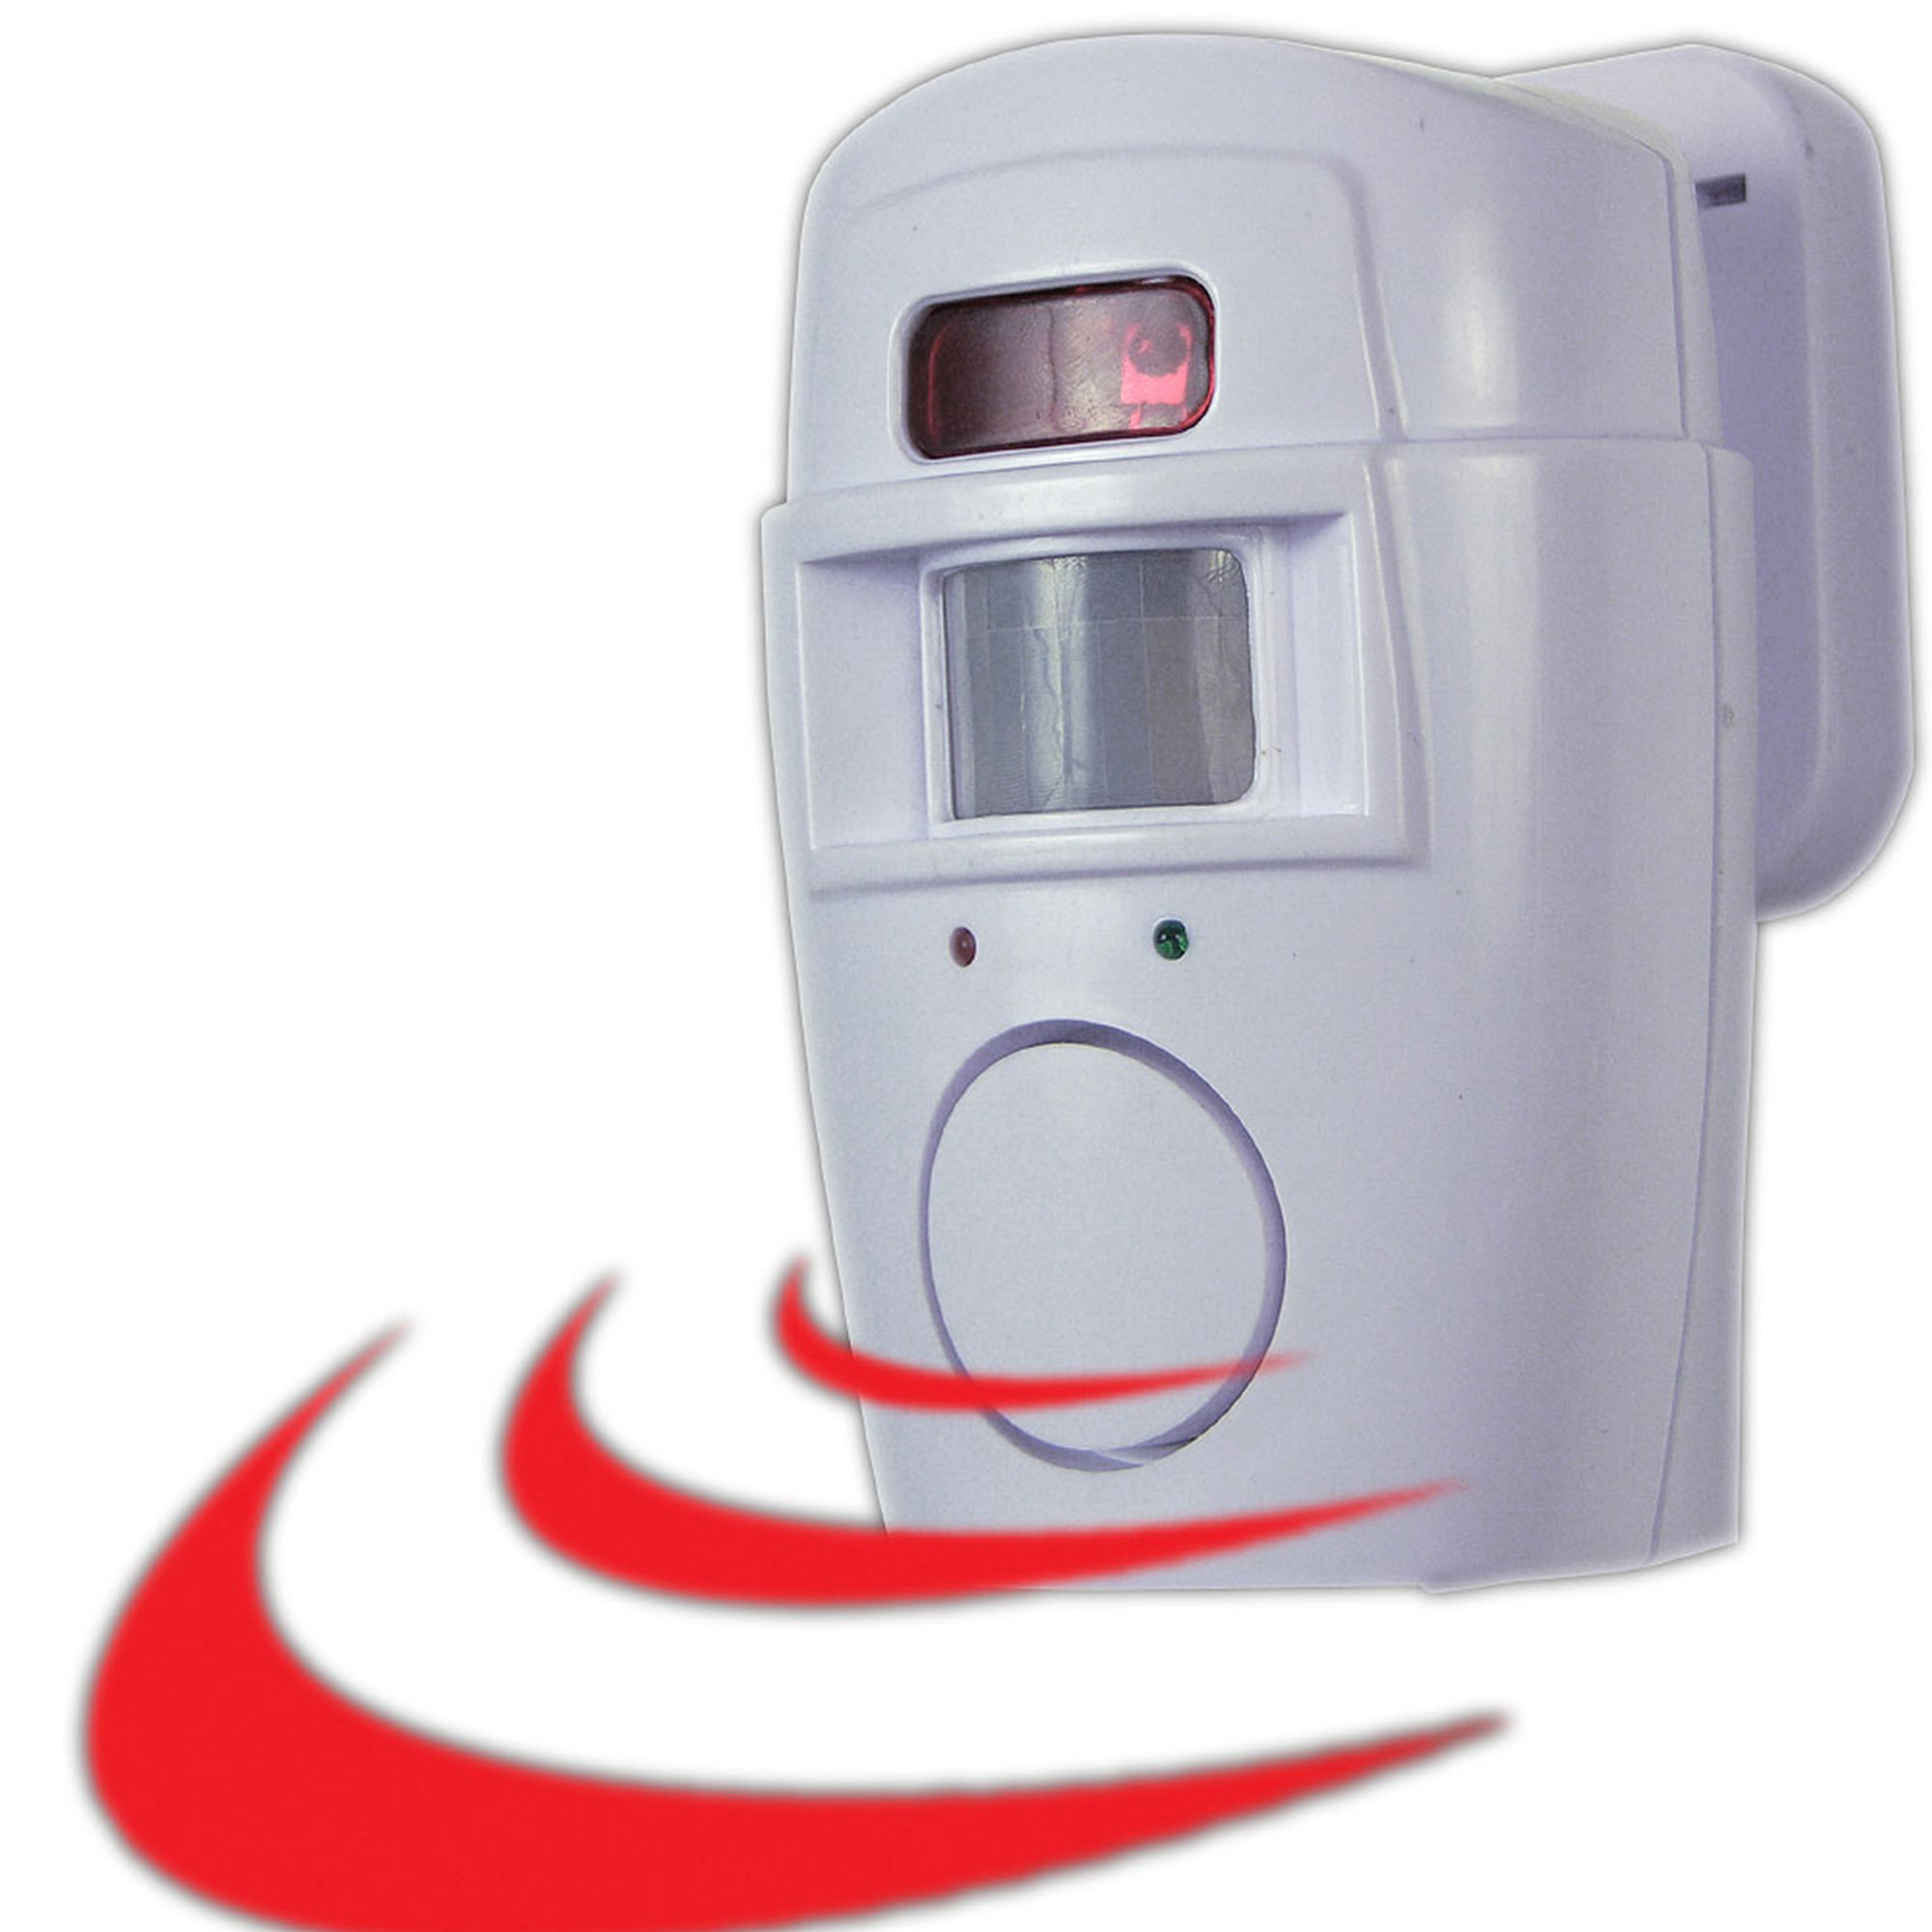 2 In 1 Motion Sensor Alarm and Chime